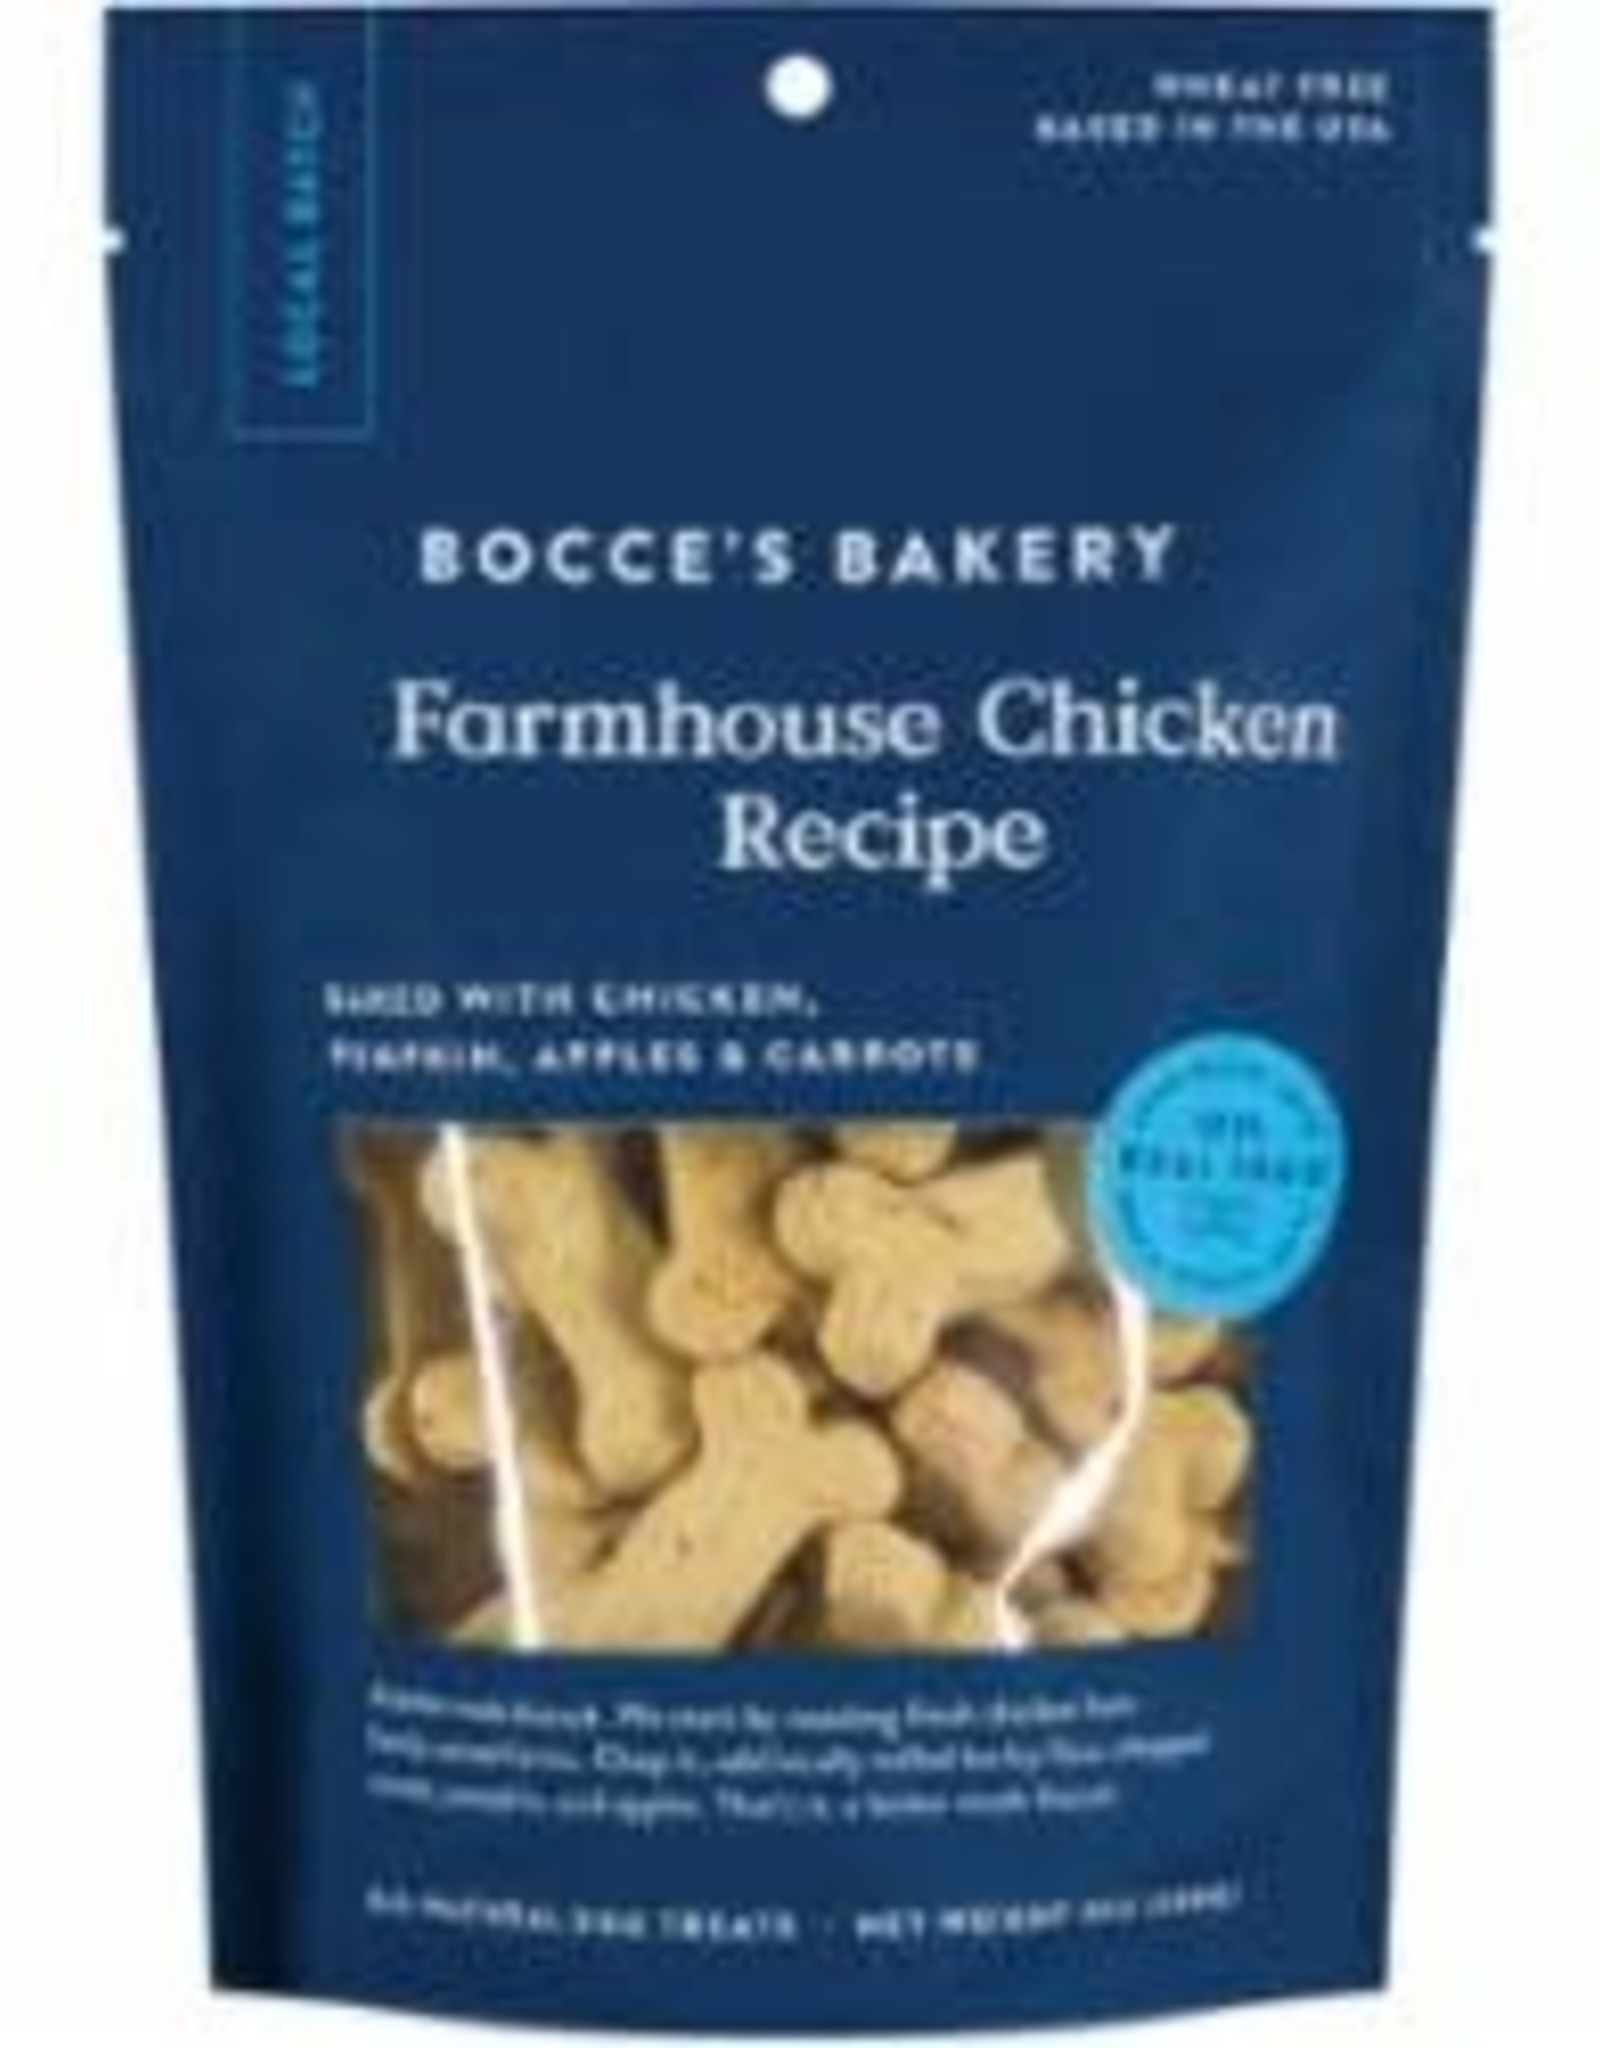 Bocce's Bakery BOCCE'S BAKERY DOG BISCUITS FARMHOUSE CHICKEN 8OZ